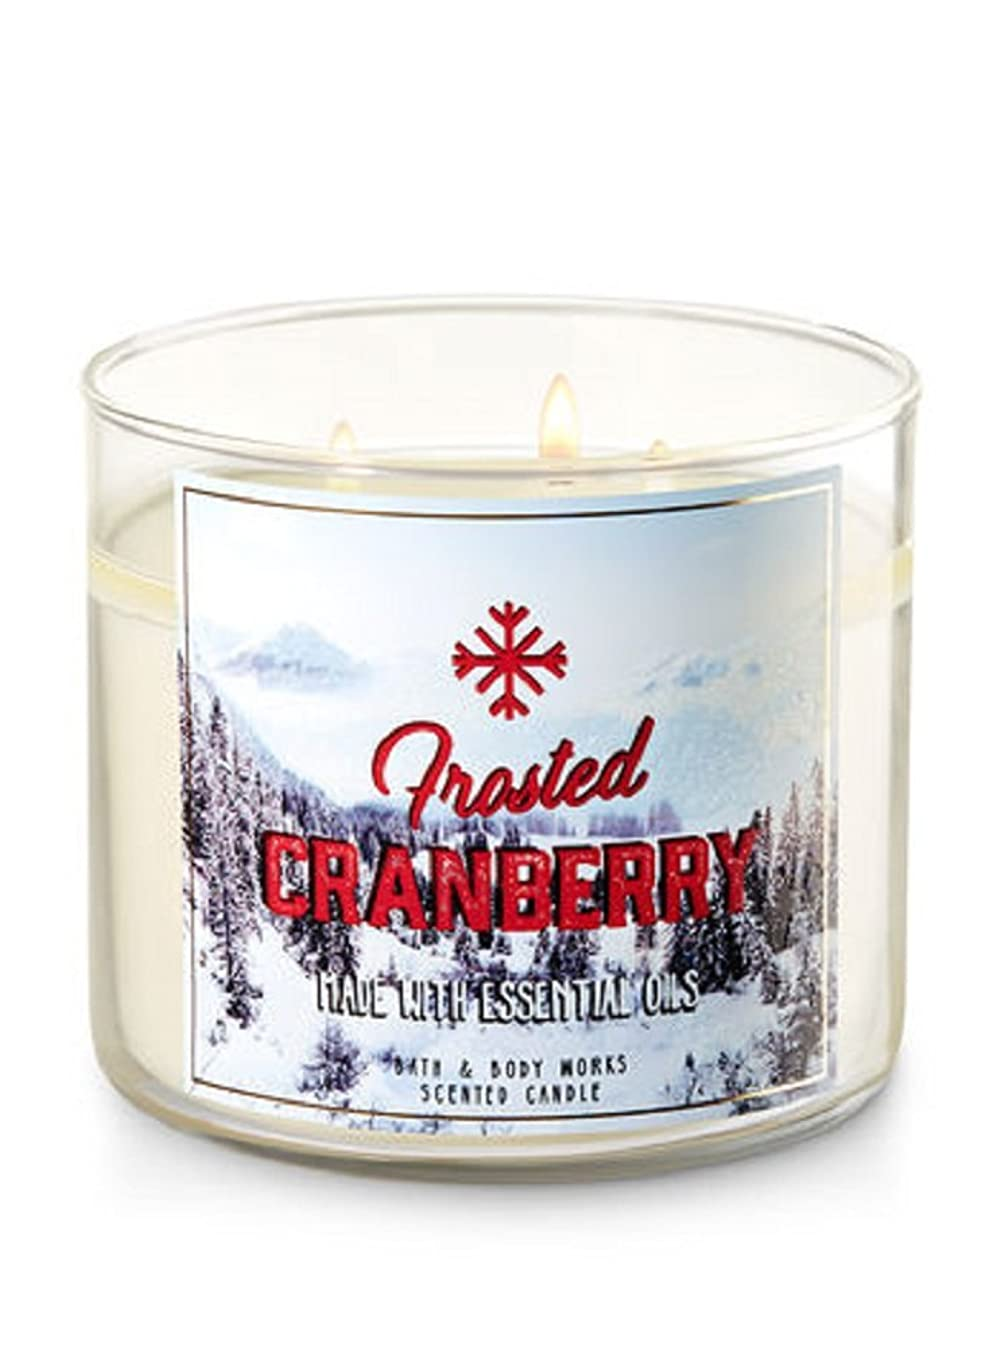 Bath & Body Works 3-Wick Candle in Frosted Cranberry